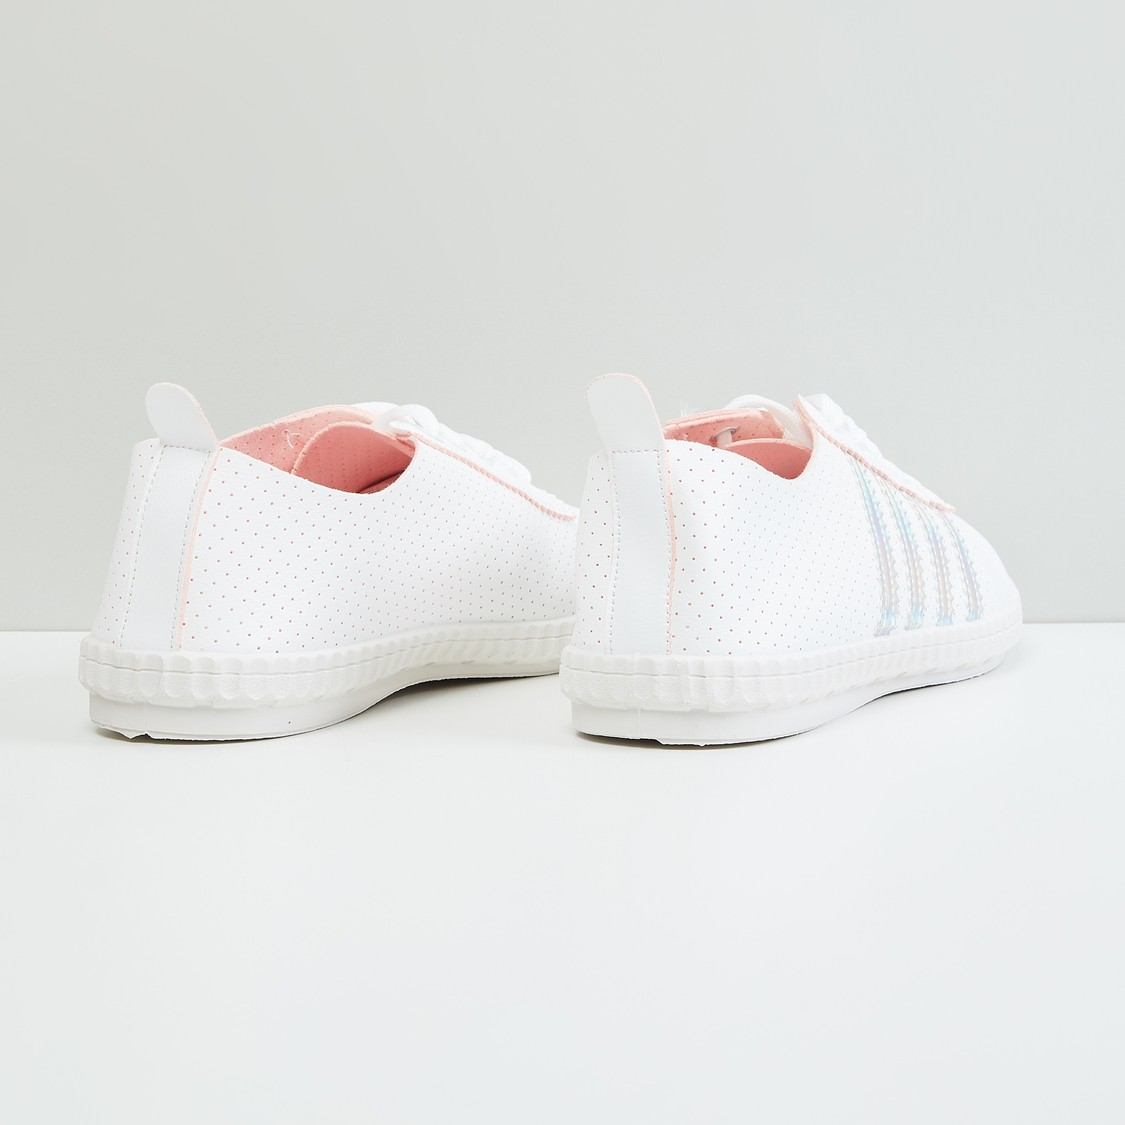 MAX Striped Lace-Up Shoes